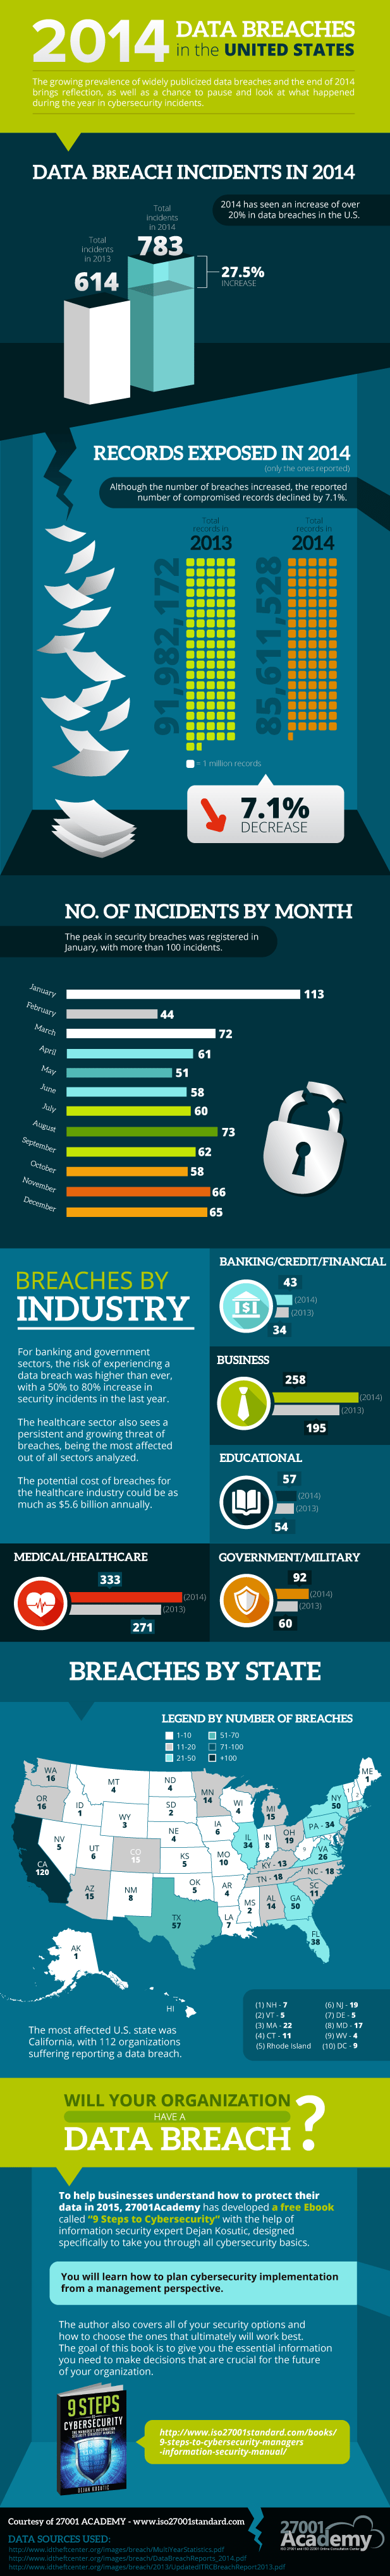 2014-Data-Breaches-in-the-United-States-Infographic1